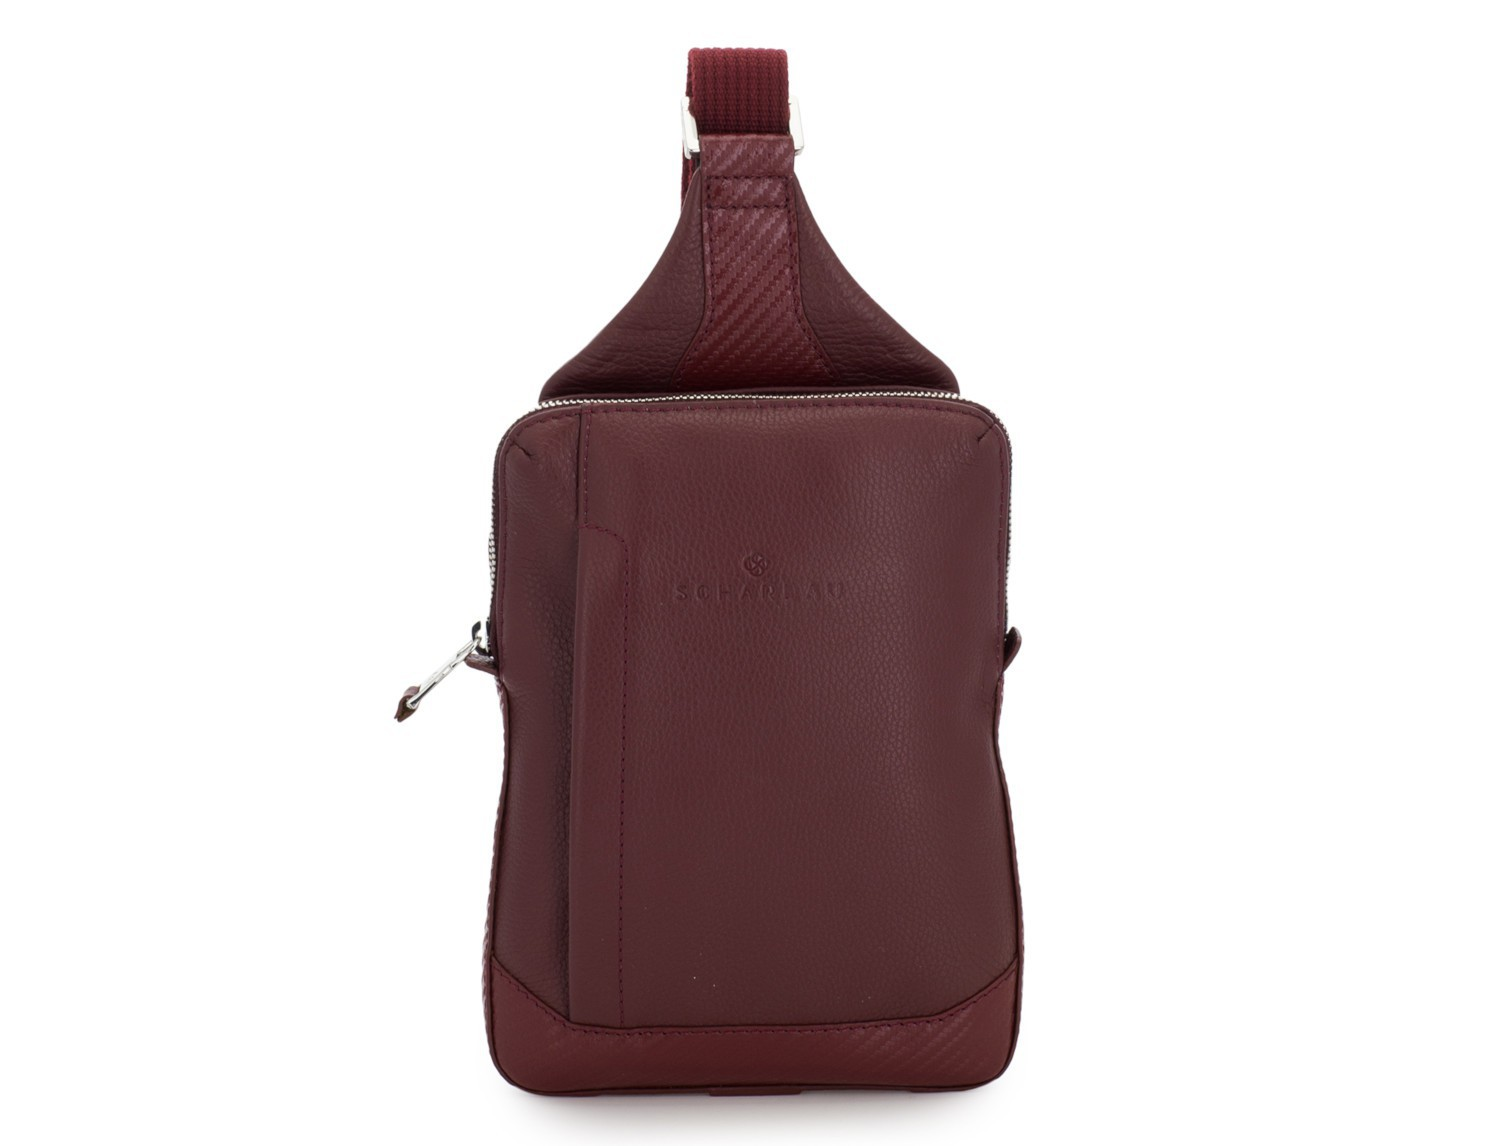 leather mono slim bag in burgundy front